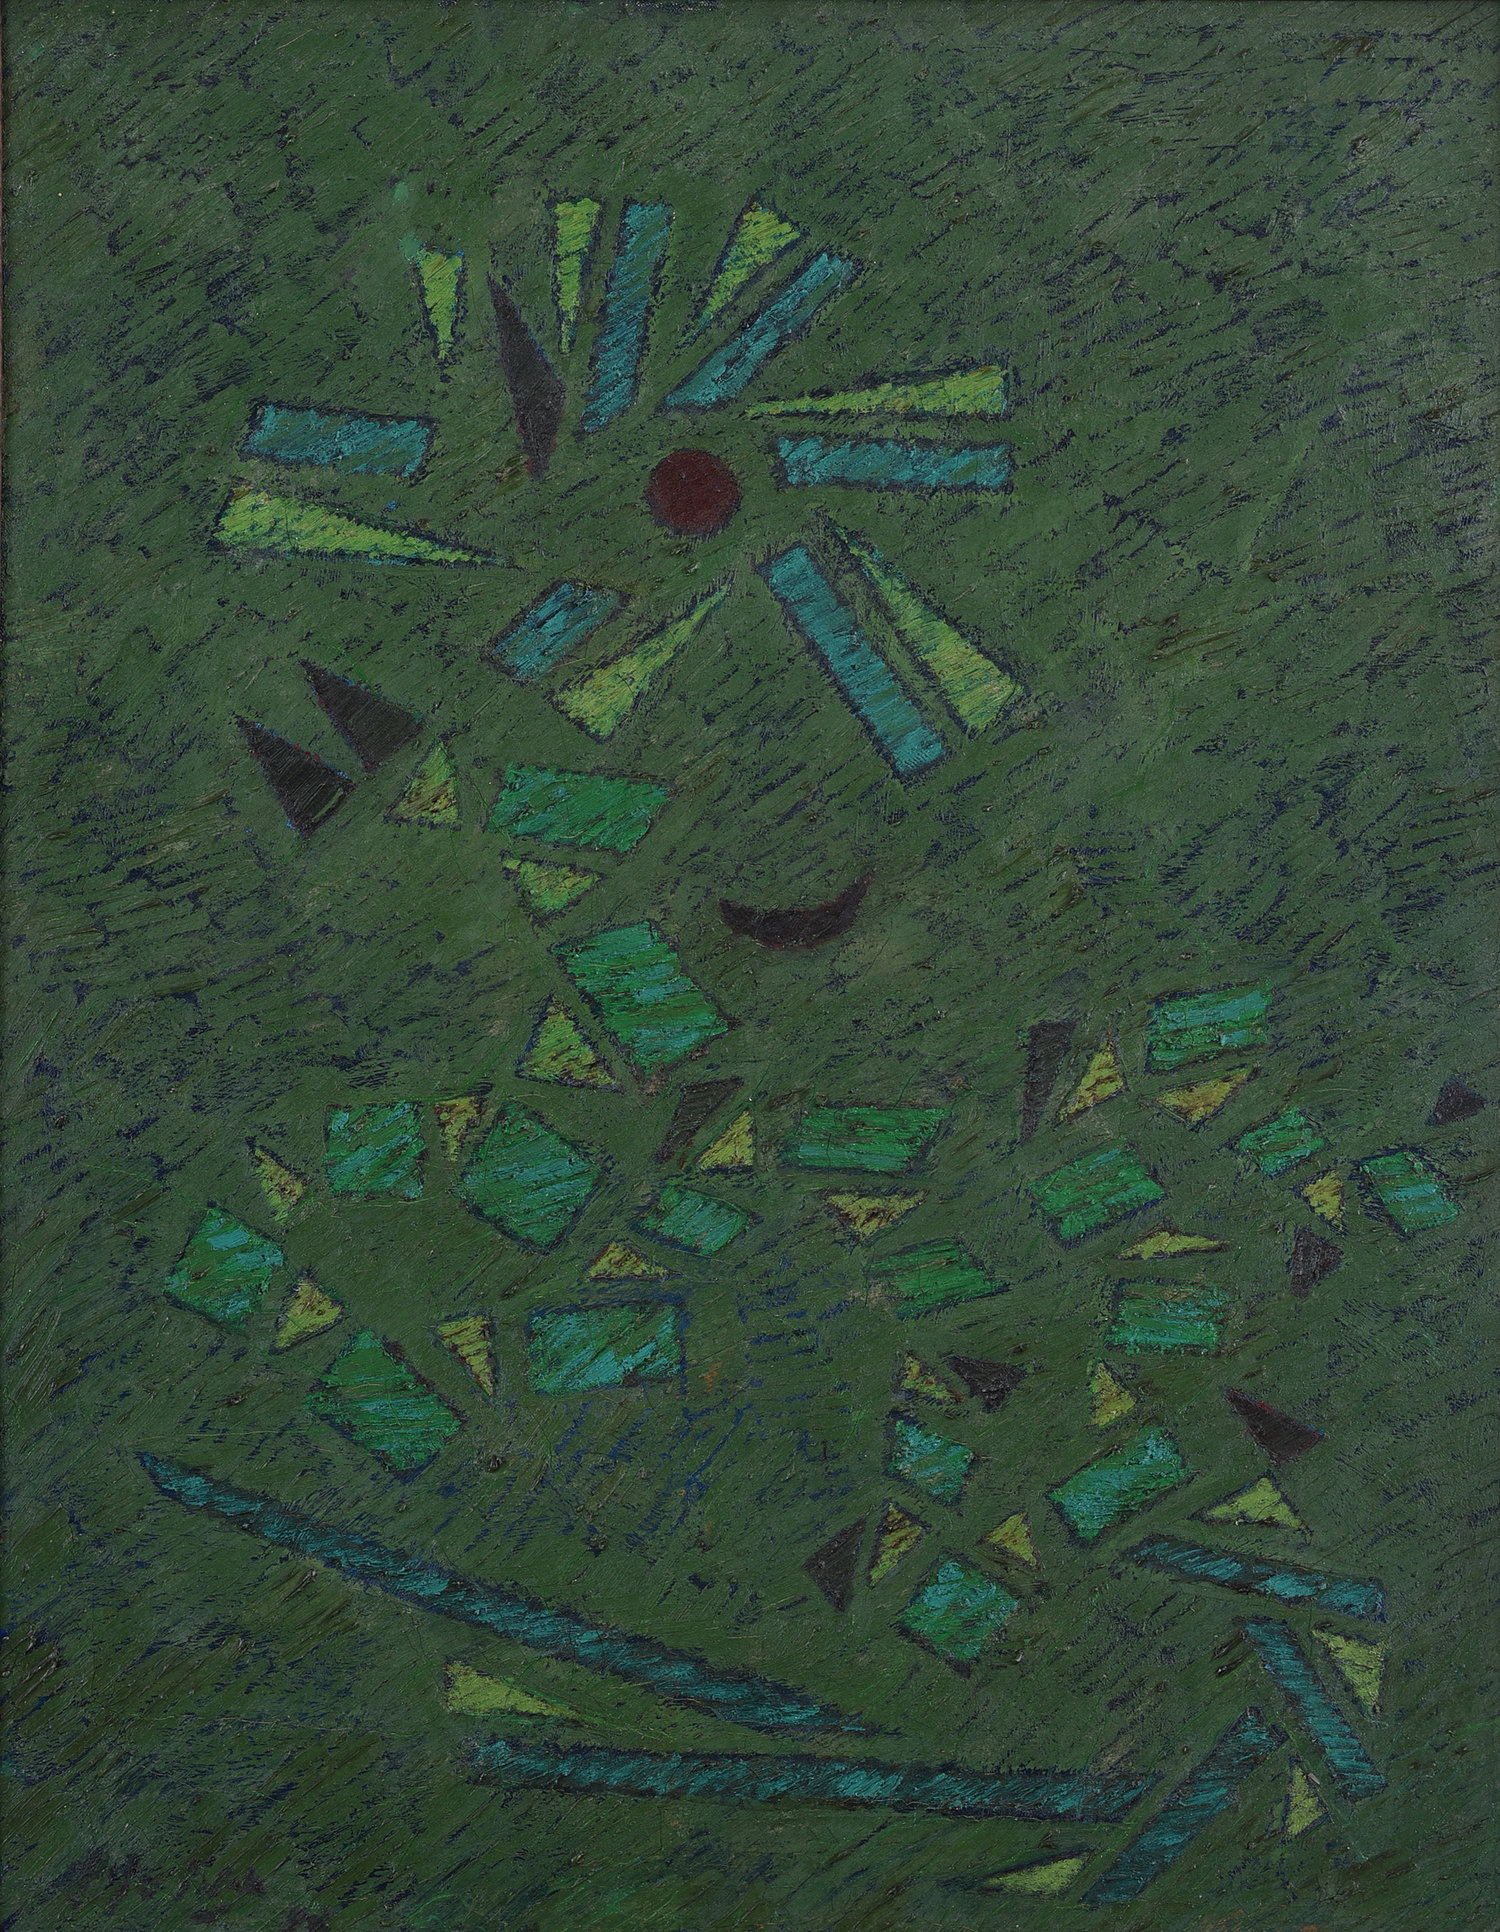 Fadjar Sidik, Sangkala Hijau (Green Sangkala), oil on canvas, 90 x 60 cm, 1990